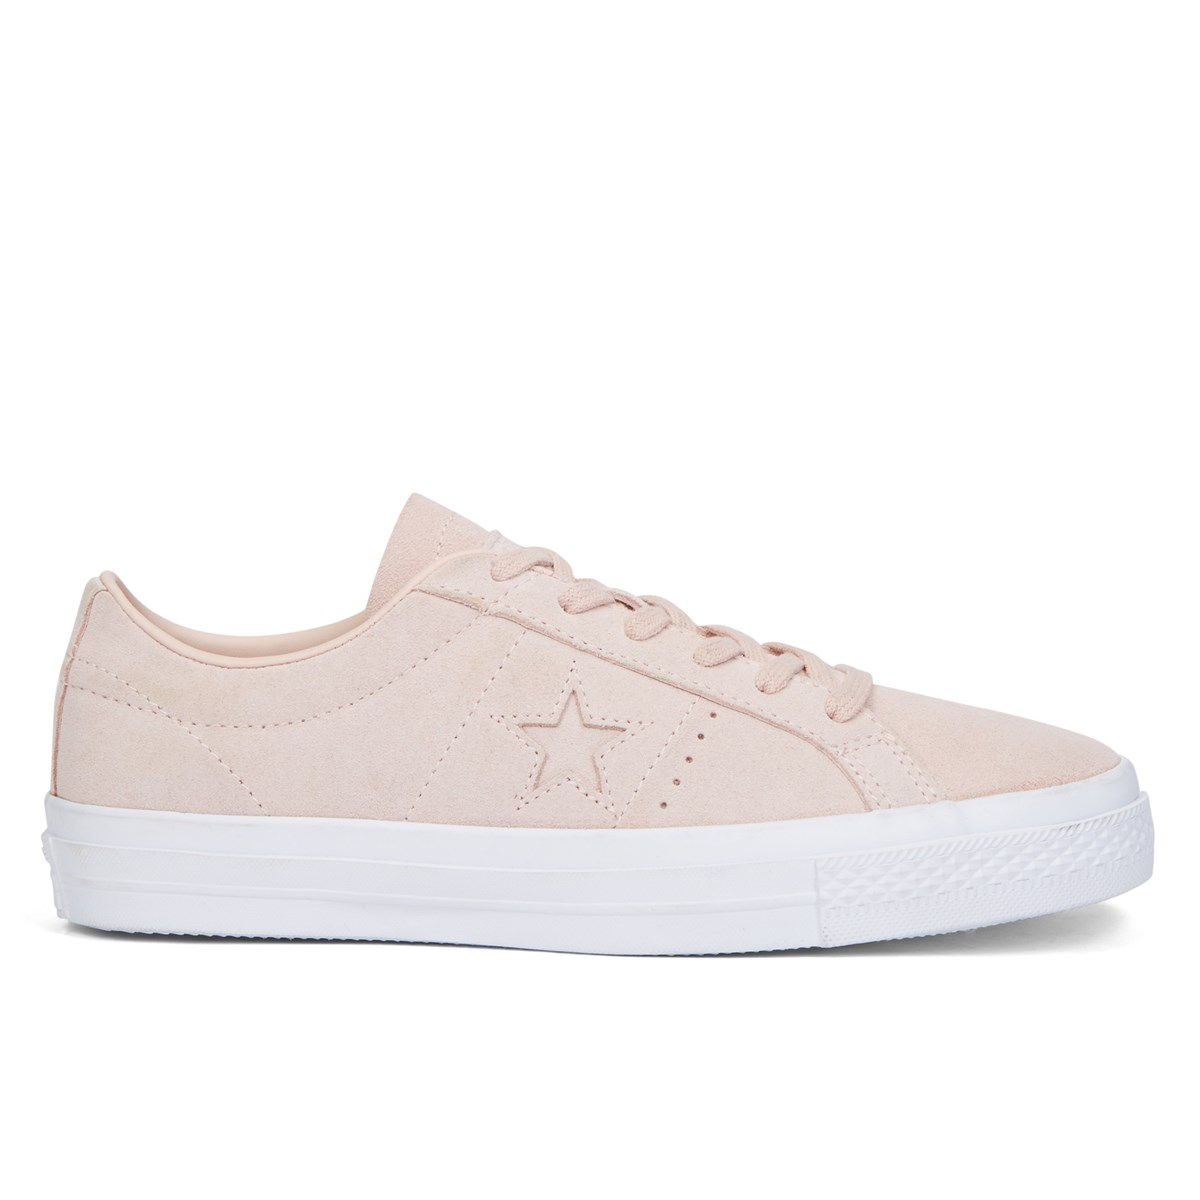 Women's One Star Plush Suede Dusk Pink Sneaker